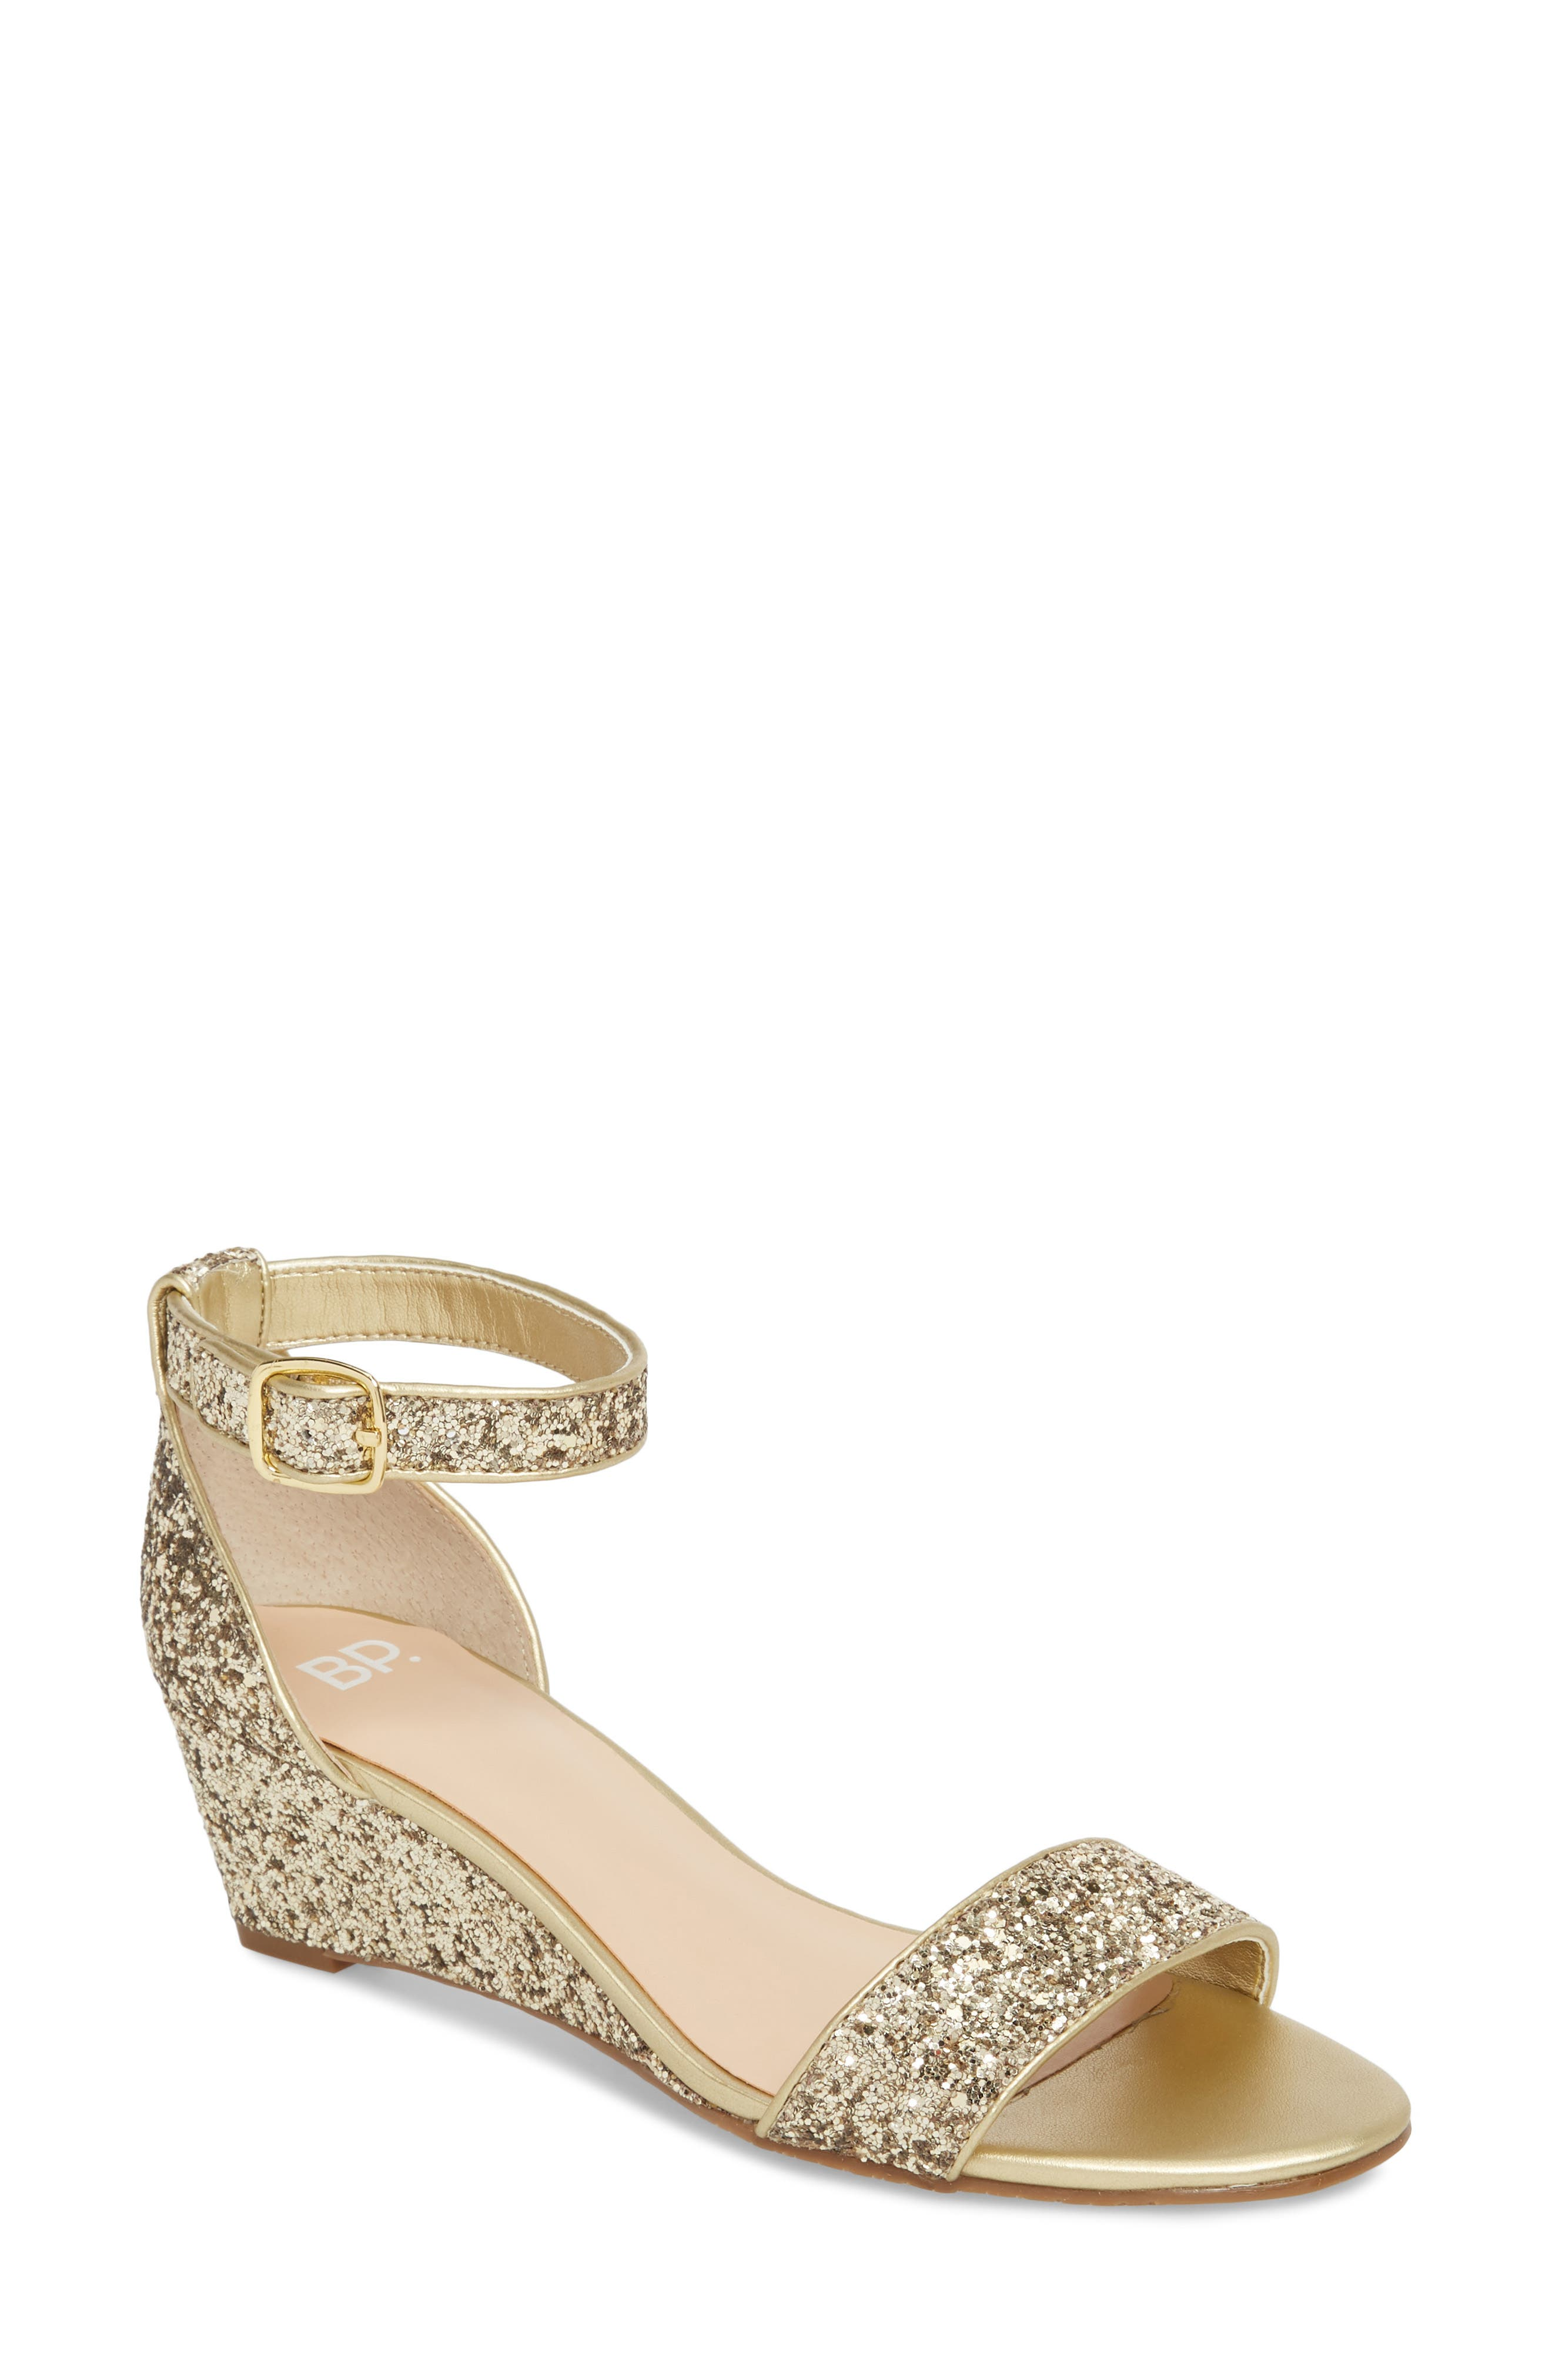 'Roxie' Wedge Sandal,                             Main thumbnail 1, color,                             GOLD GLITTER